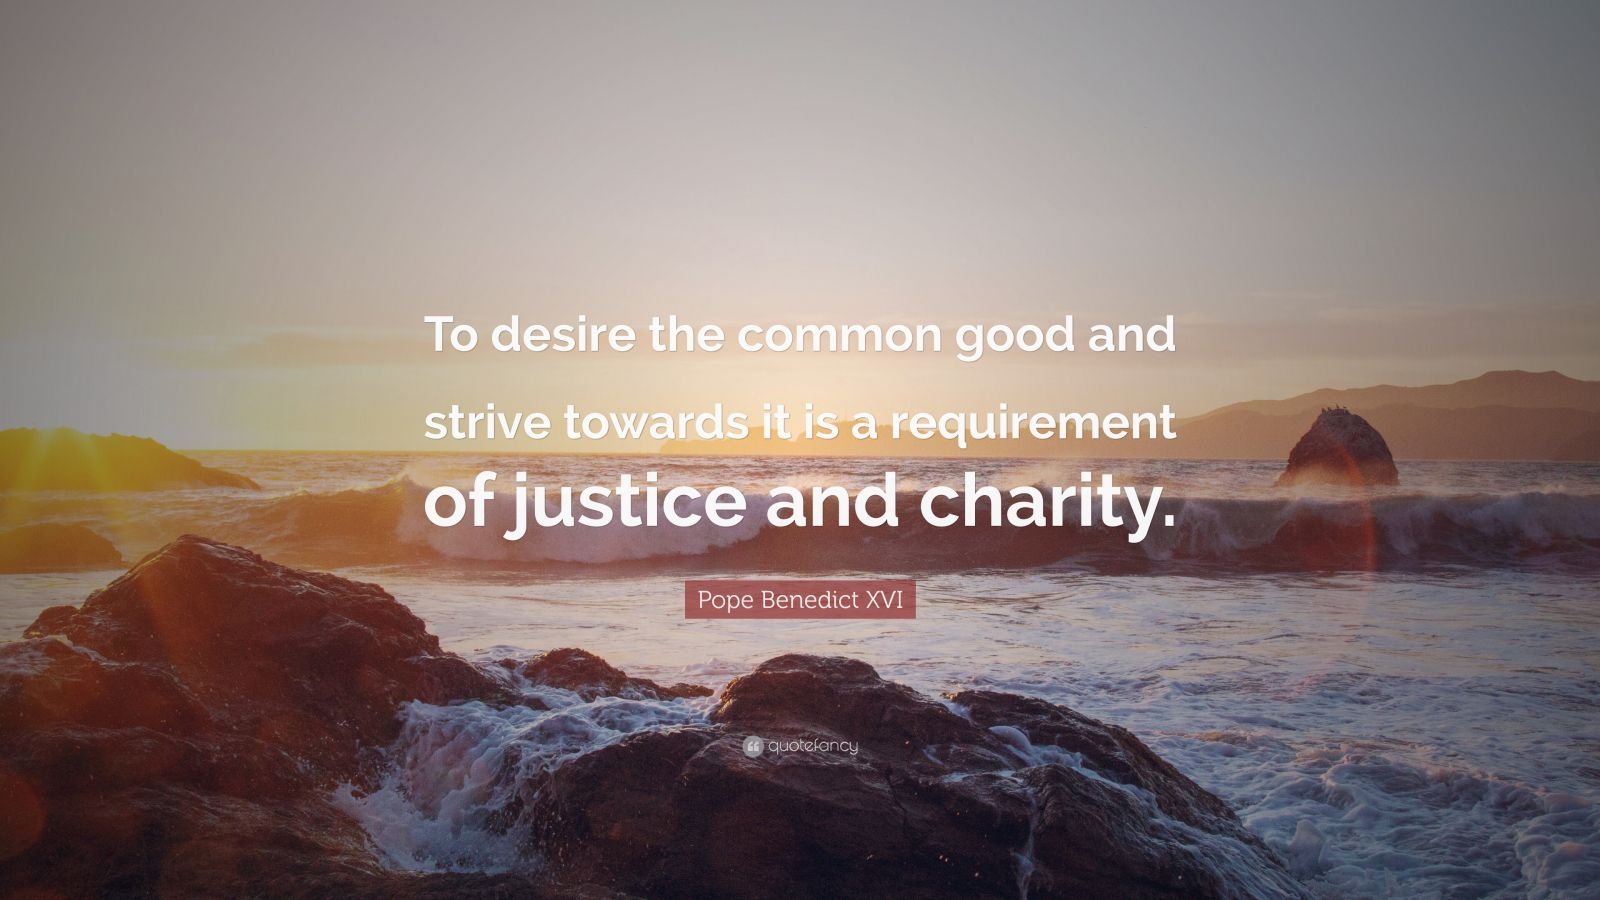 """Pope Benedict XVI Quote: """"To desire the common good and strive towards it is a requirement of justice and charity."""""""